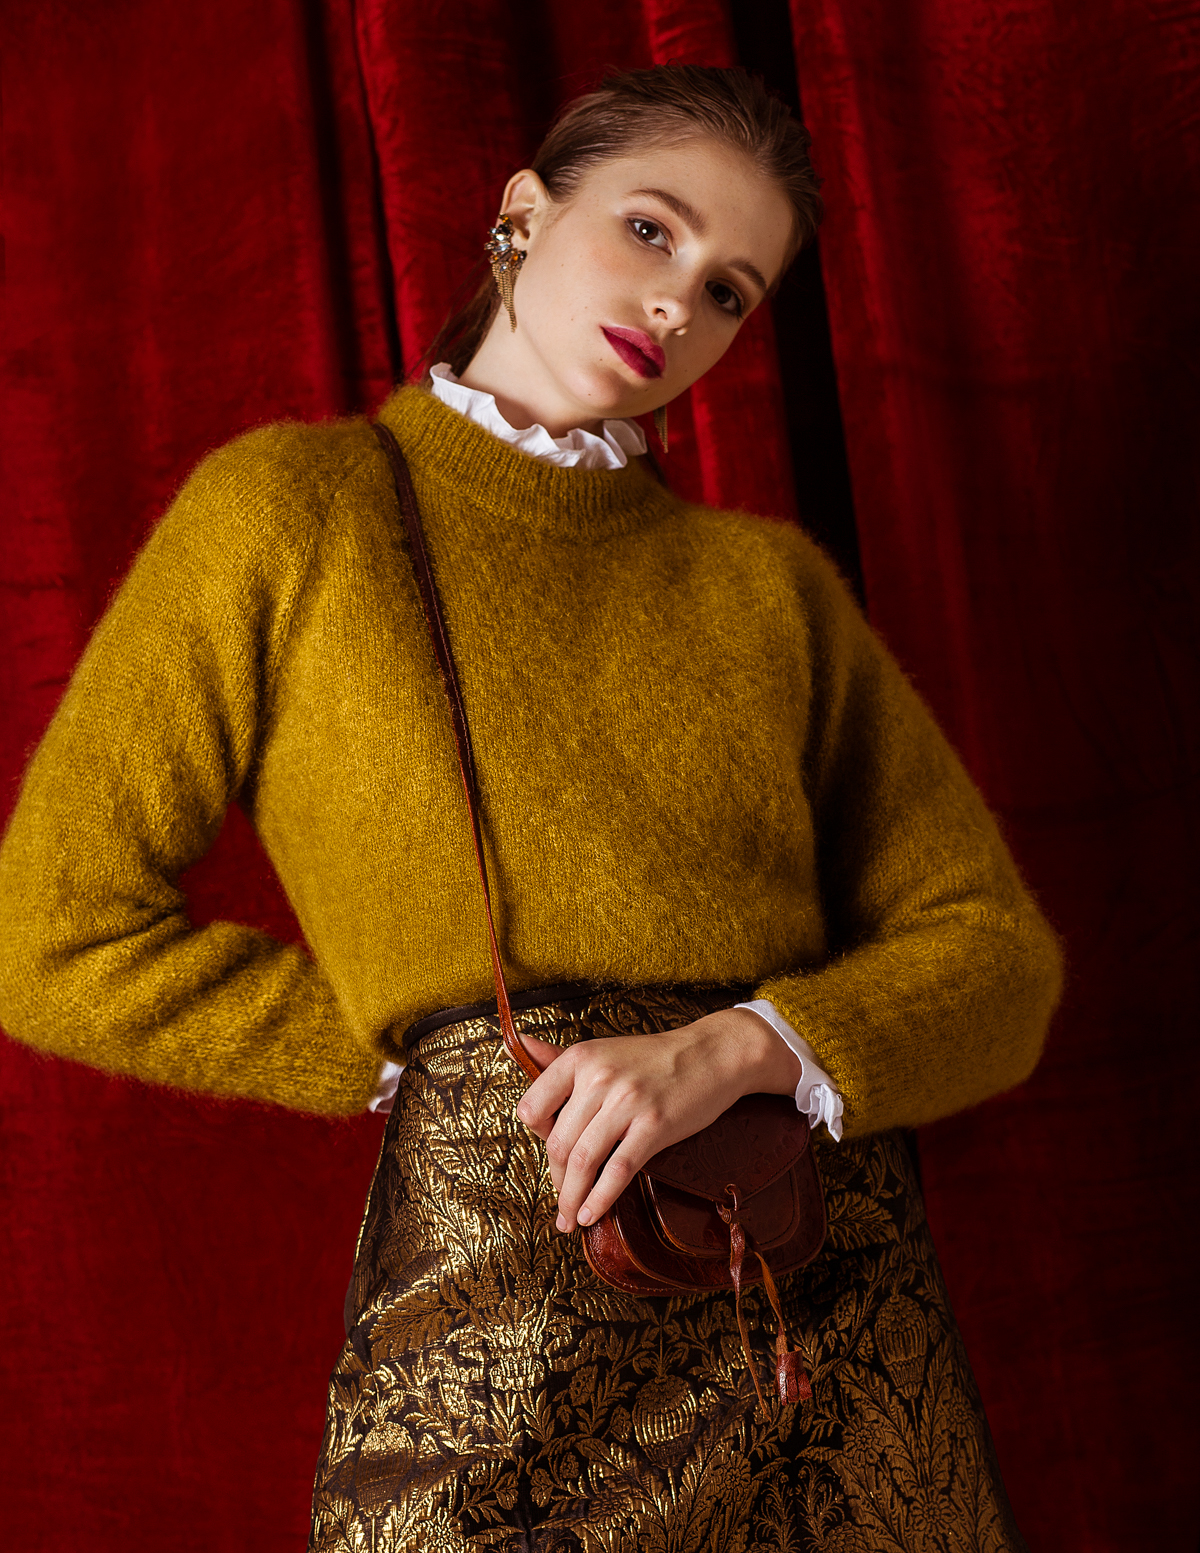 Kat_Terek_London_Bohemian_Editorial_Fashion_Photographer_Lindenstaub_Autumn-13